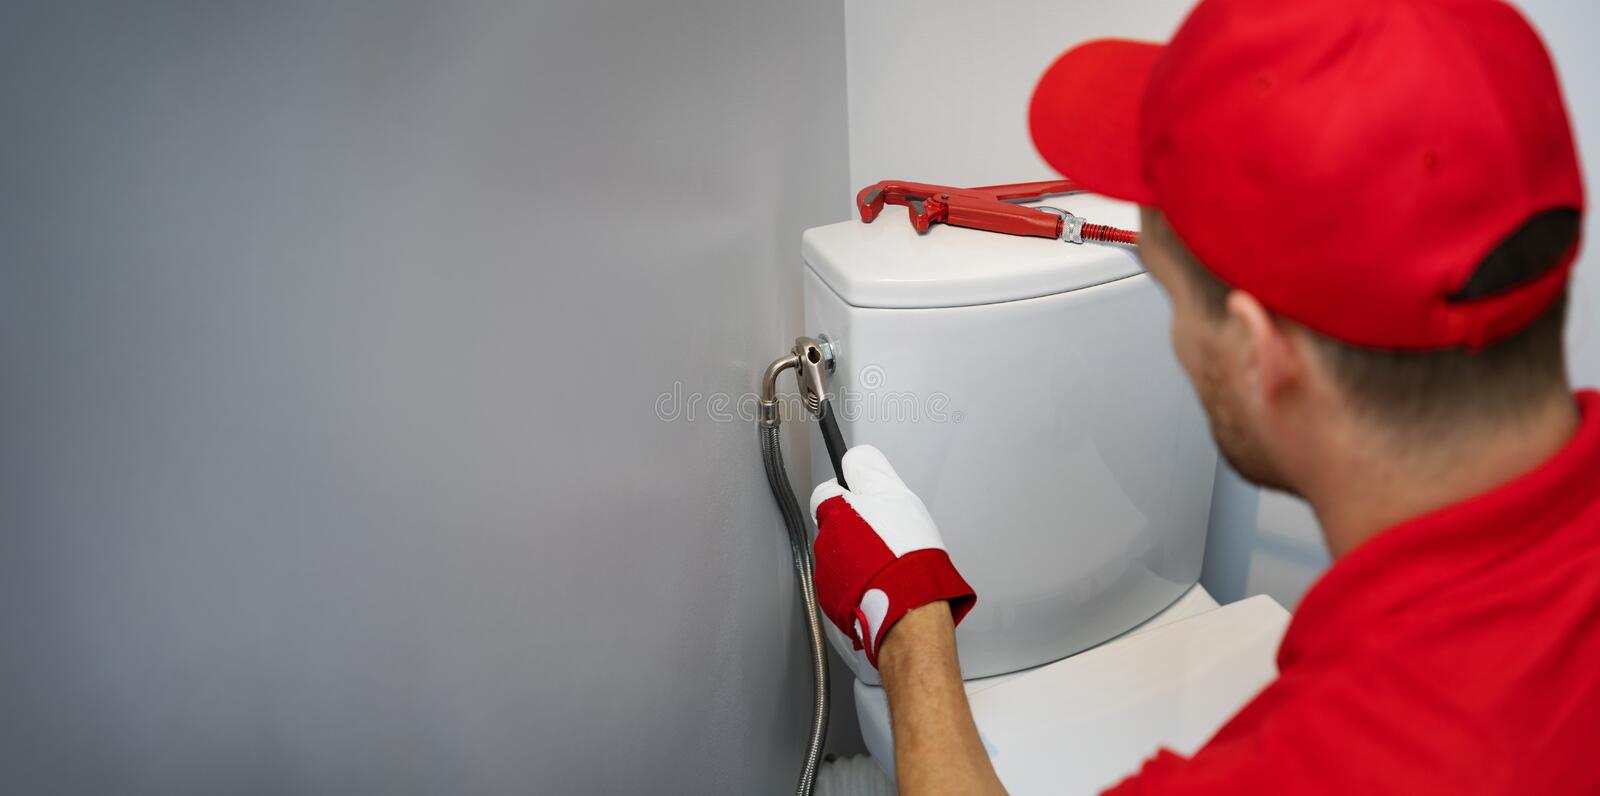 Plumber working in toilet installing water pipe to wc tank copy space royalty free stock photography